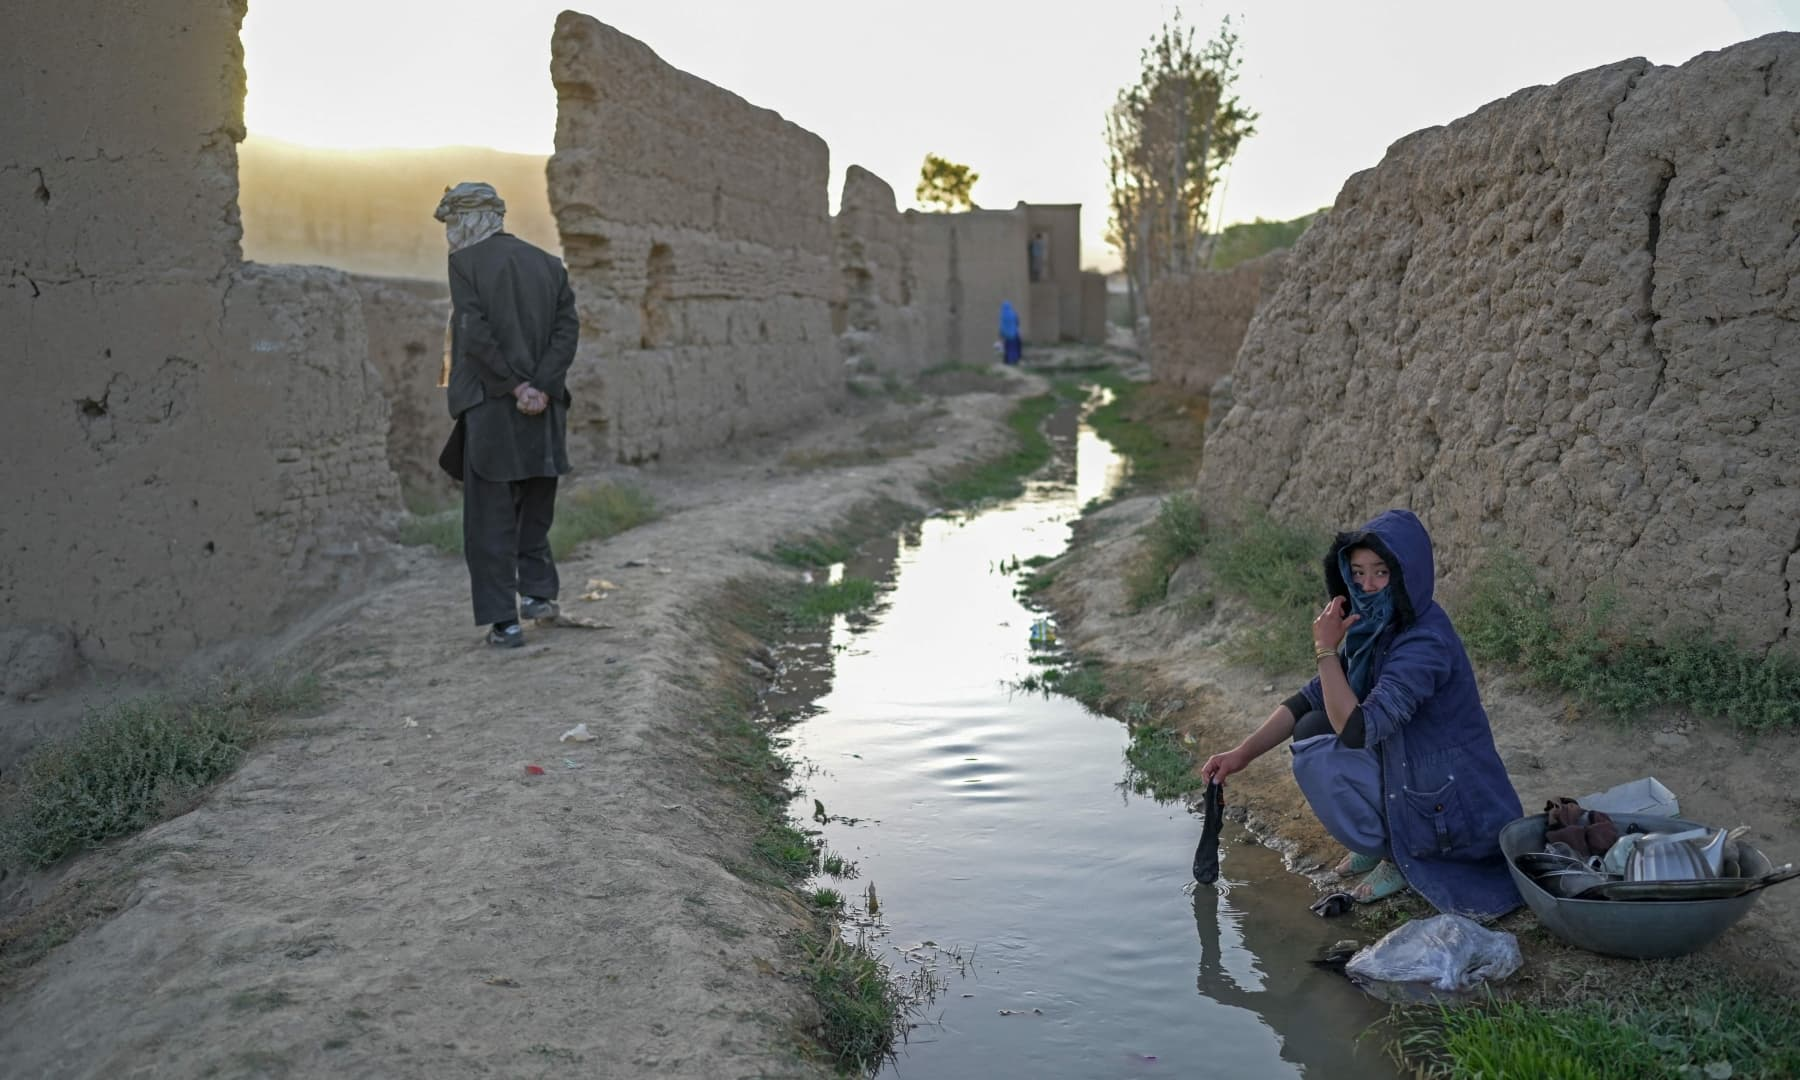 A woman watches while washing clothes and dishes at a village in Bamiyan, Afghanistan on October 3, 2021. — AFP